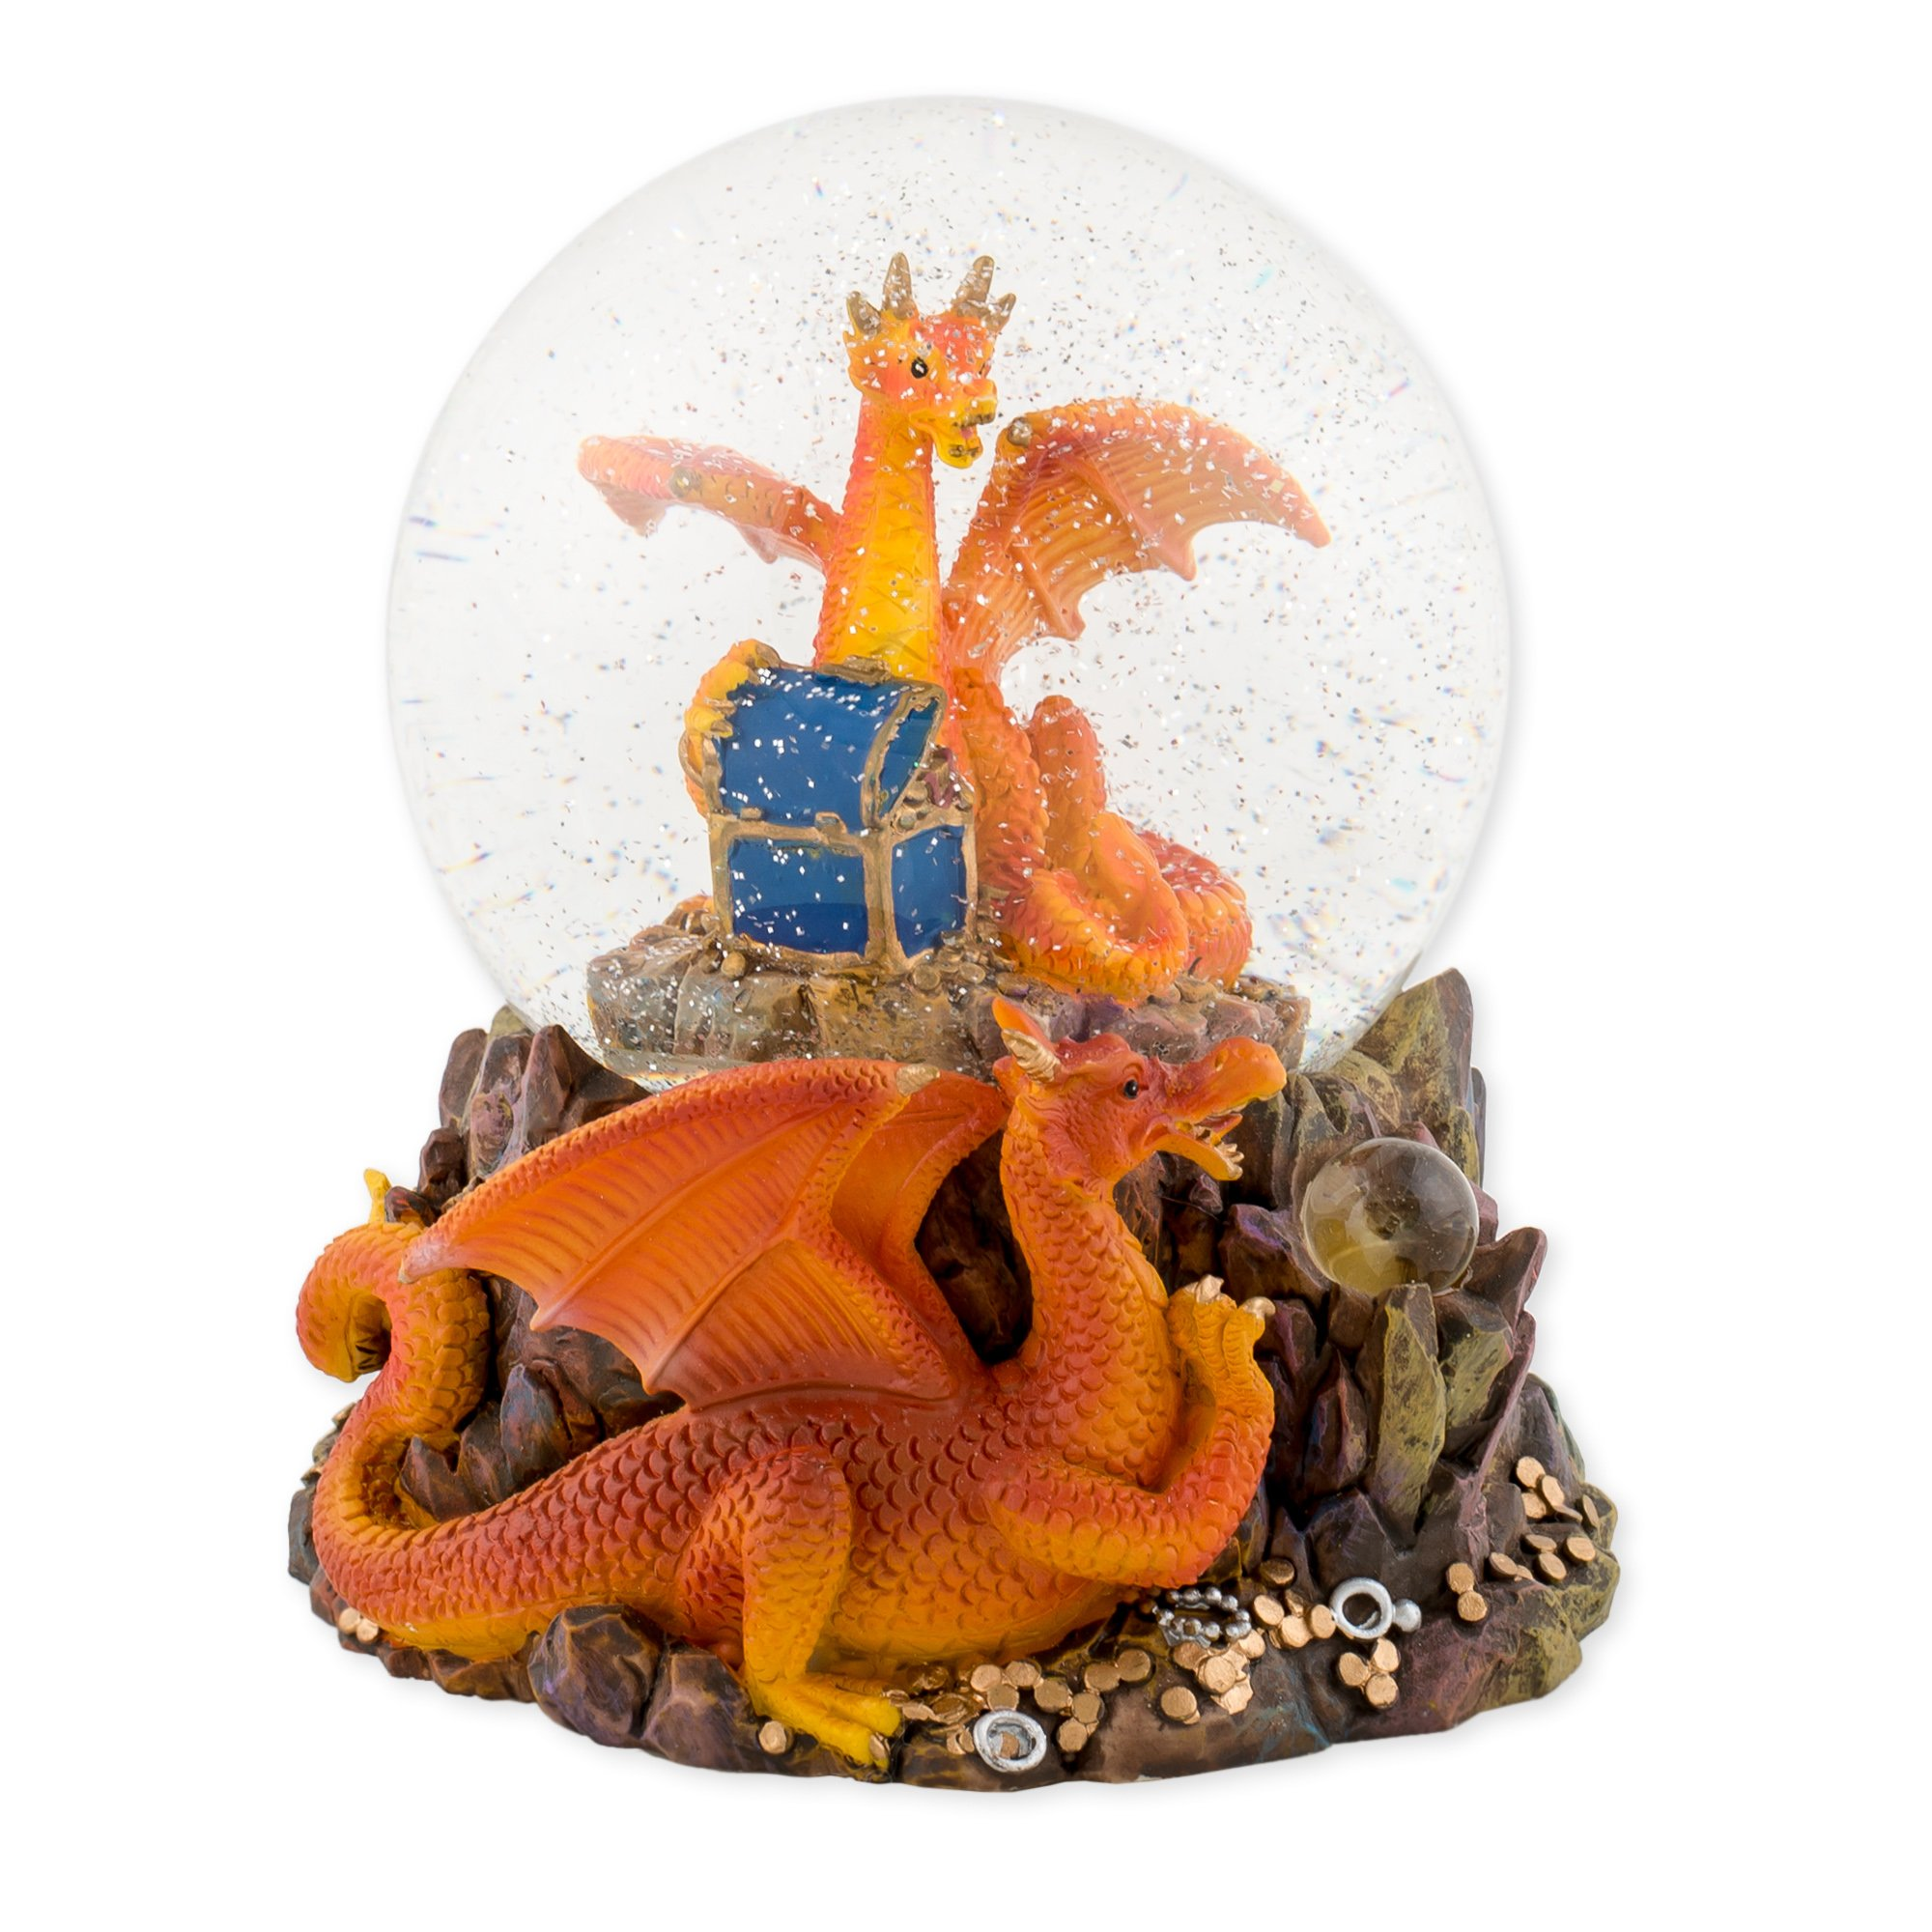 Orange Dragon with Treasure Chest 100mm Resin Glitter Water Globe Plays Tune Now is the Hour